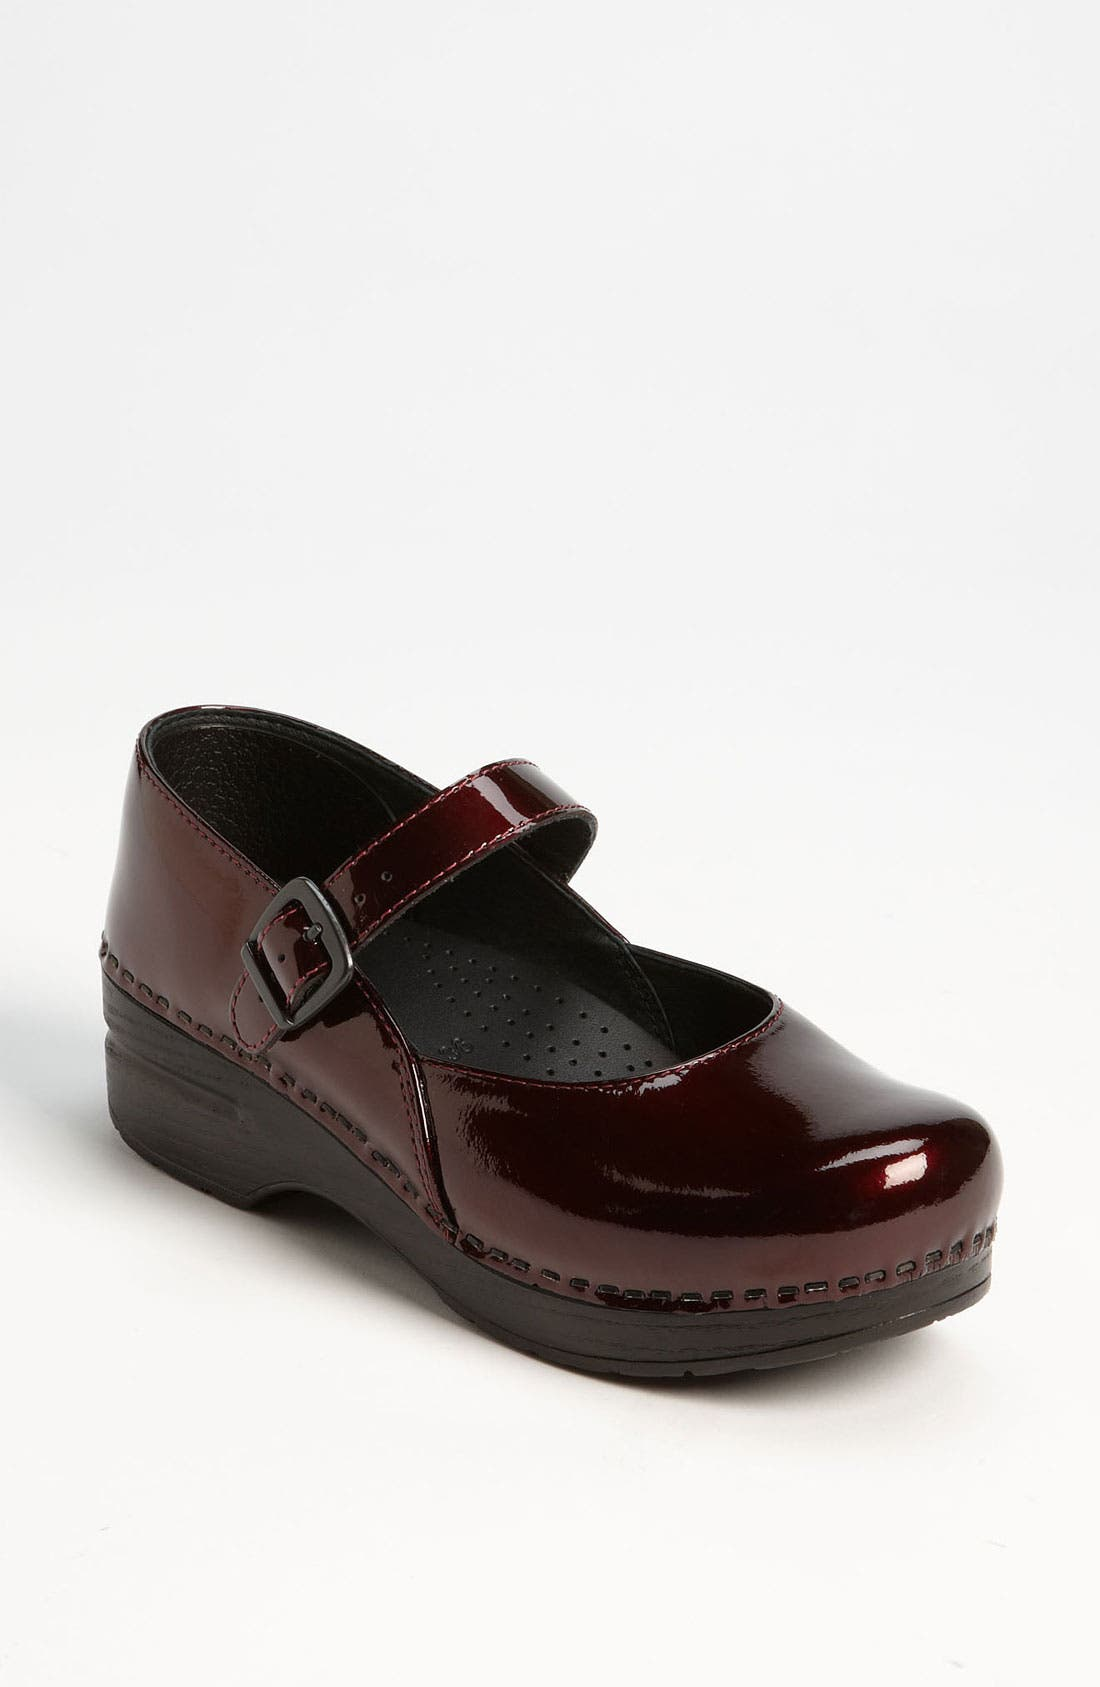 Alternate Image 1 Selected - Dansko 'Professional Mary Jane' Clog